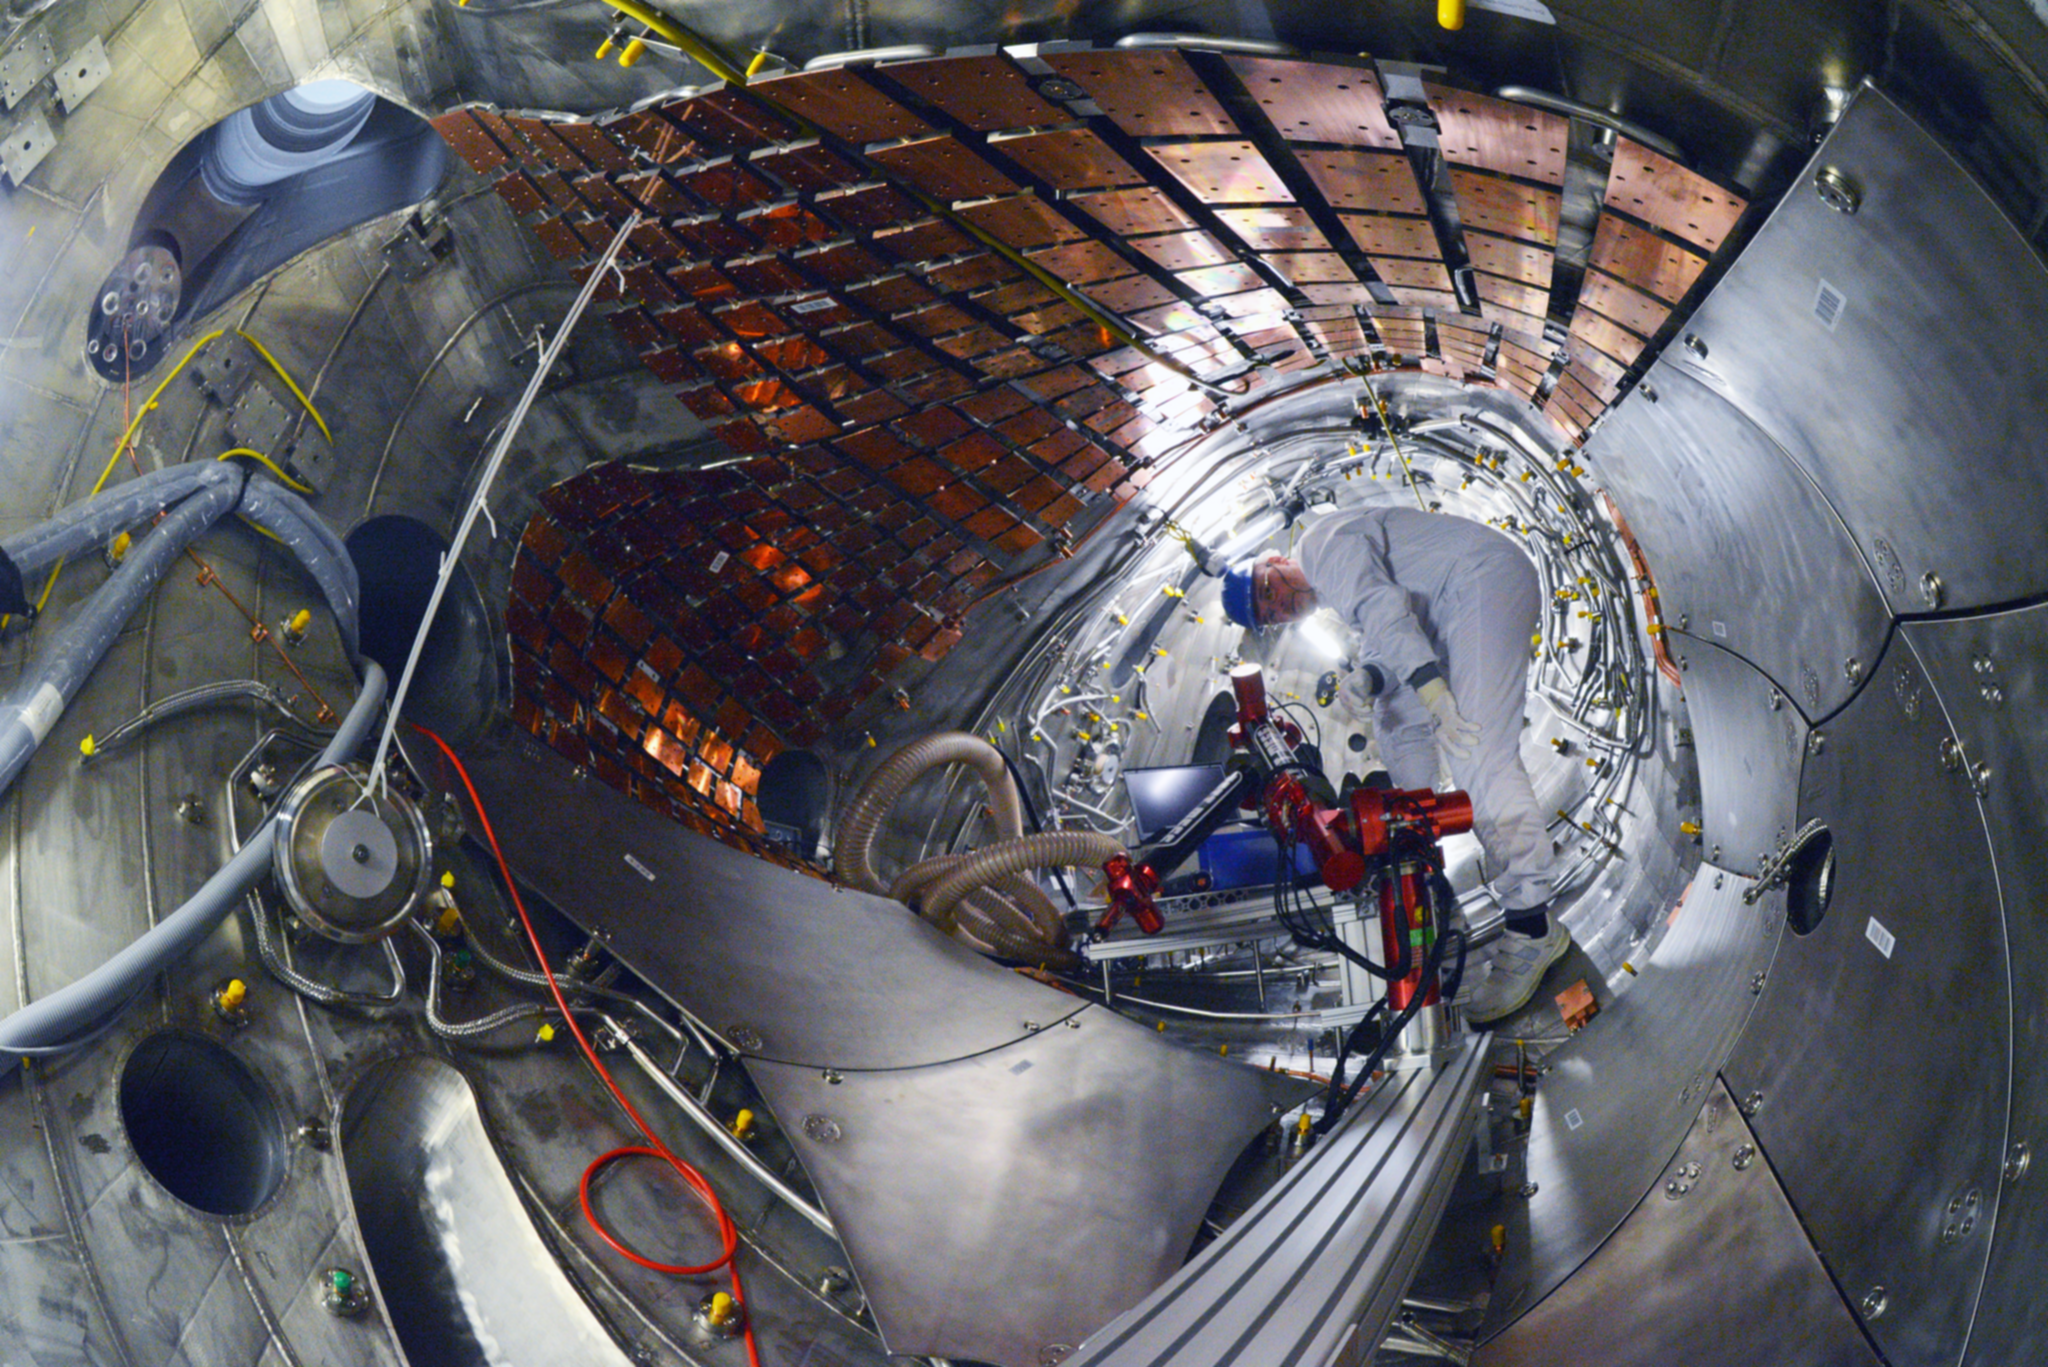 Too cool for fuel: inside the nuclear fusion reactor Wendelstein 7-X stellarator